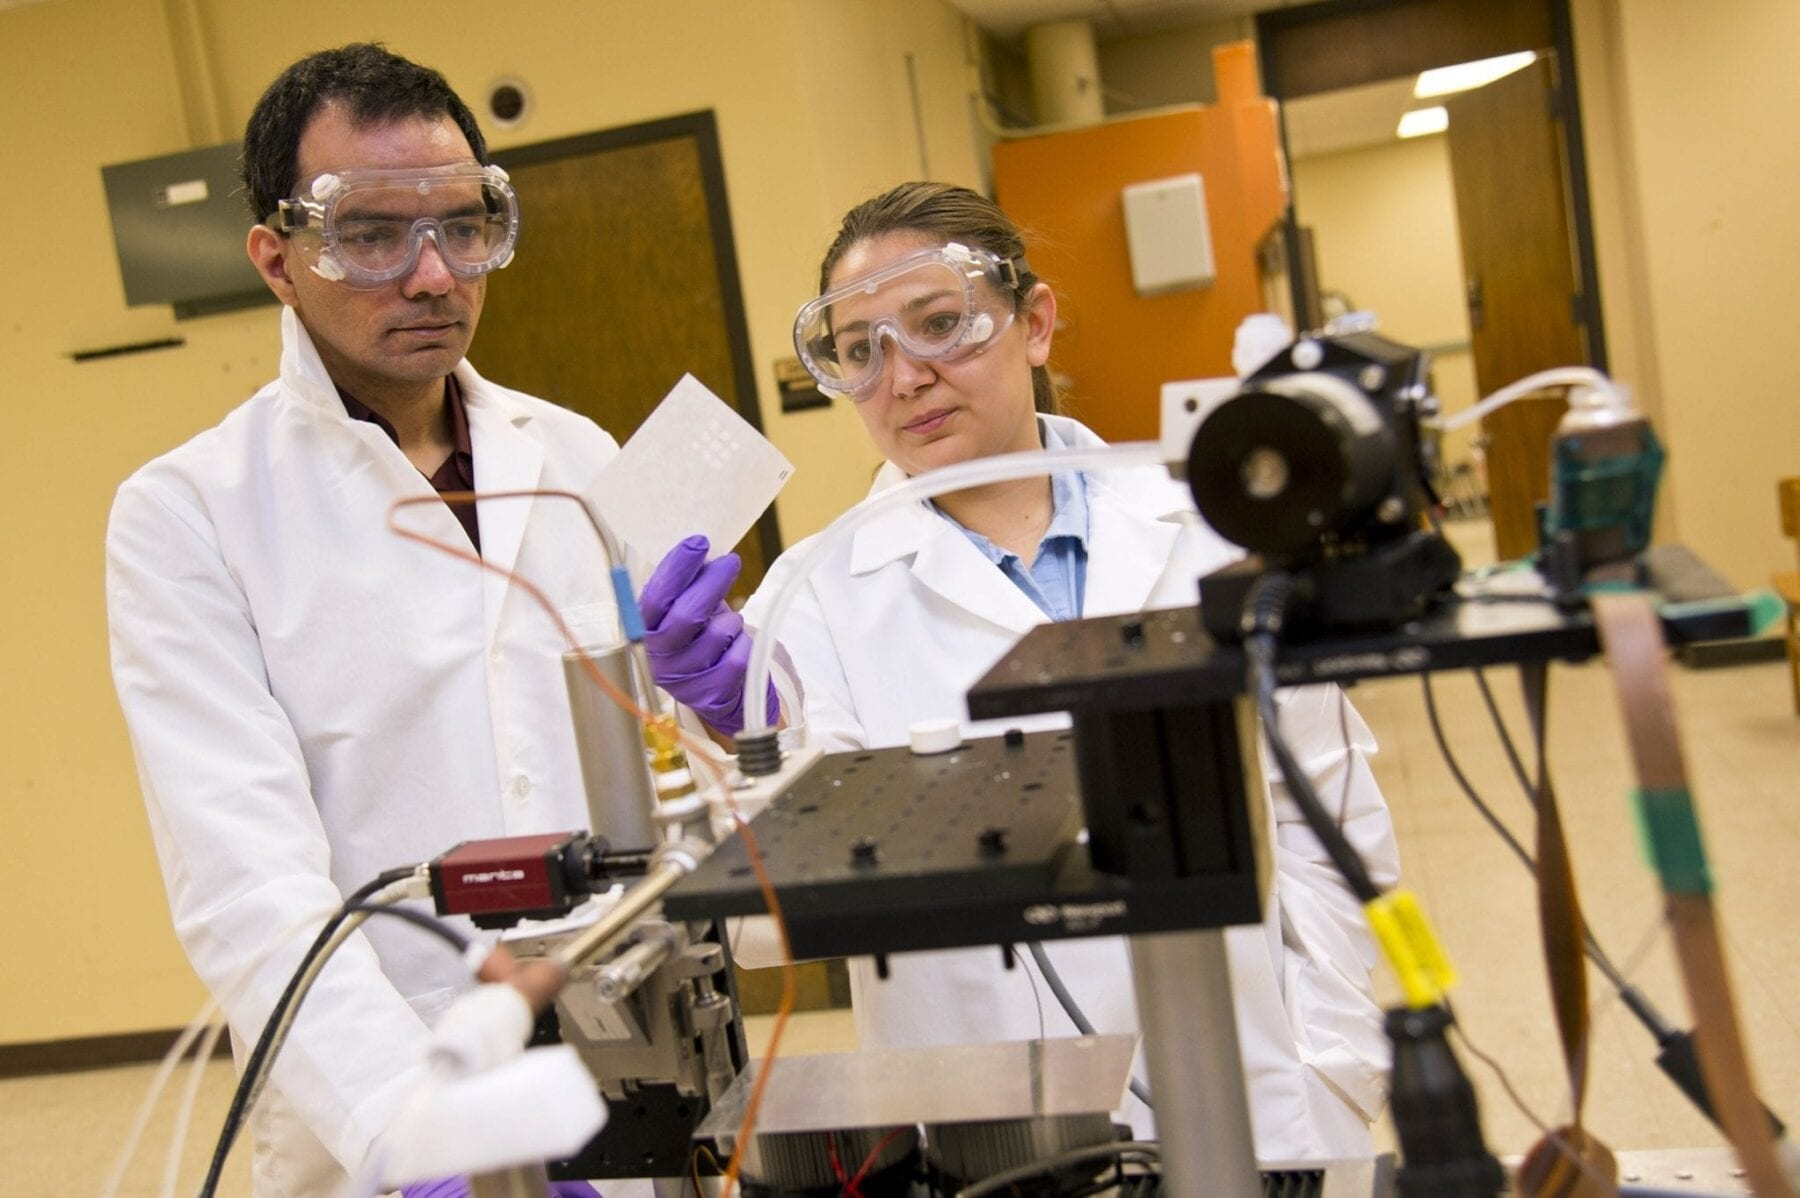 Arun Giridhar, an associate research scientist in Purdue's School of Chemical Engineering, works with student Sierra Davis to operate a prototype system to dispense precise medication dosages tailored for specific patients, an advance in personalized medicine that could improve drug effectiveness and reduce adverse reactions. (Purdue University photo/Steven Yang)